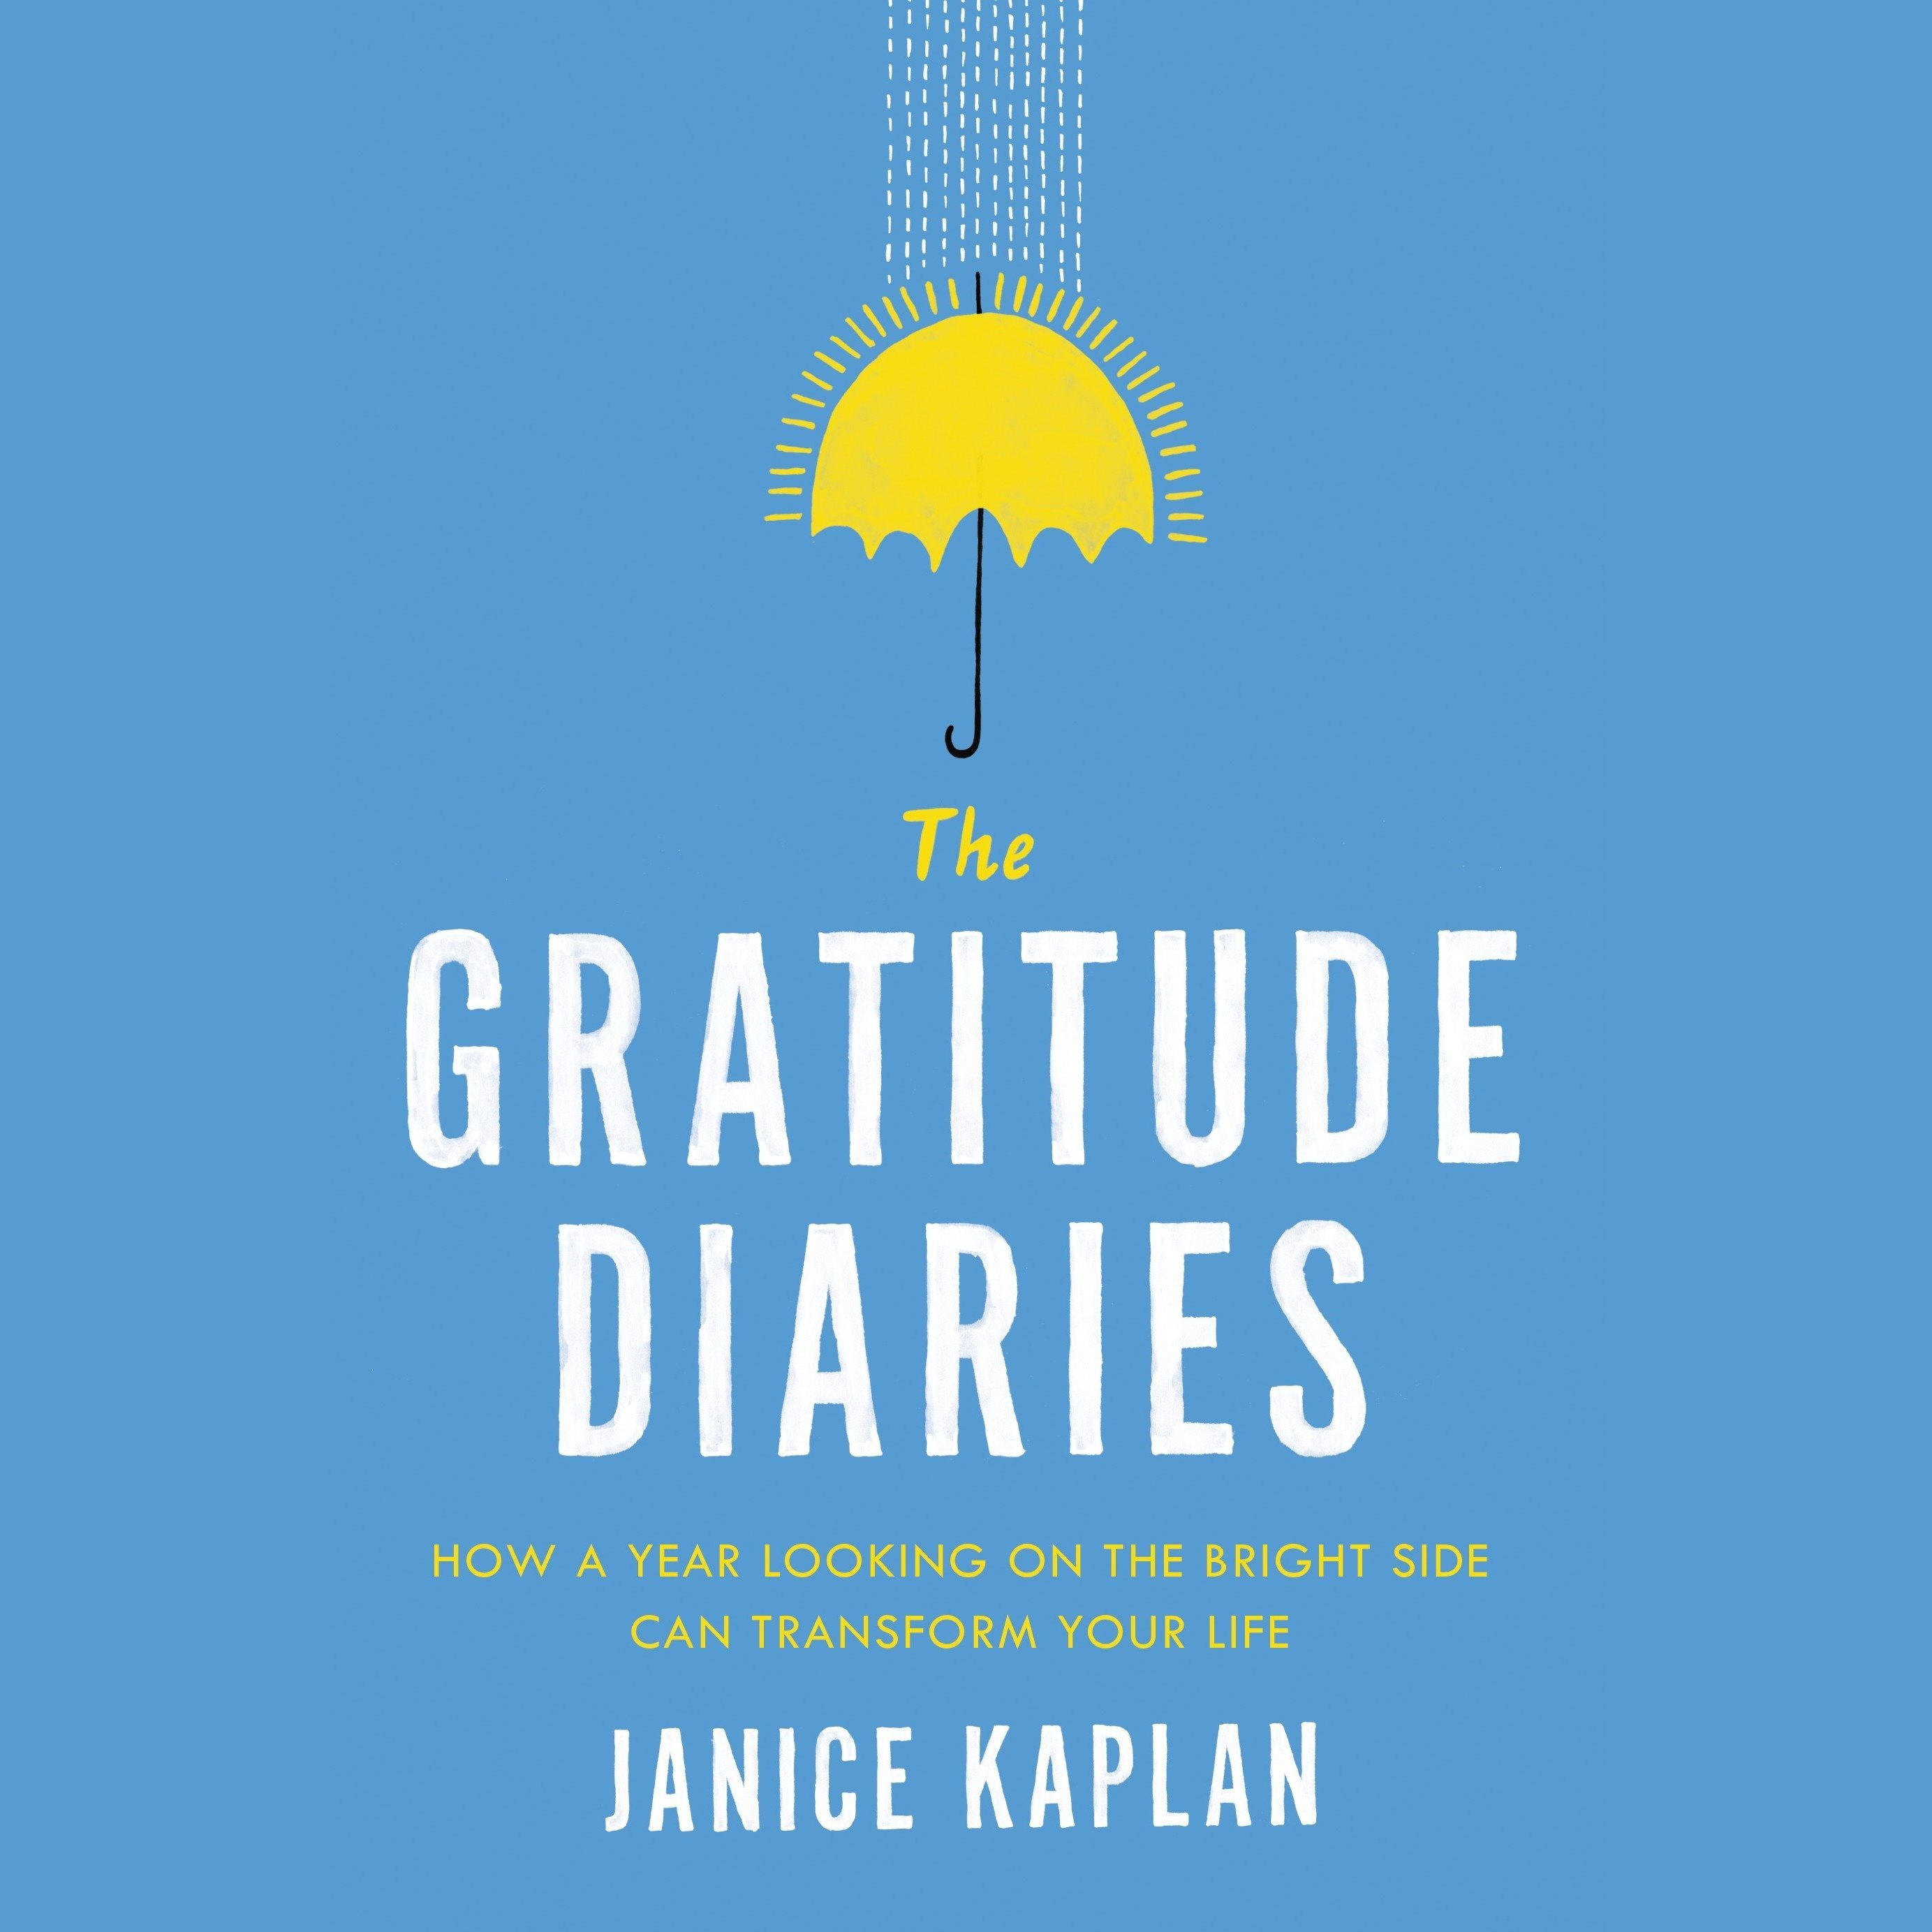 Printable The Gratitude Diaries: How a Year Looking on the Bright Side Can Transform Your Life Audiobook Cover Art